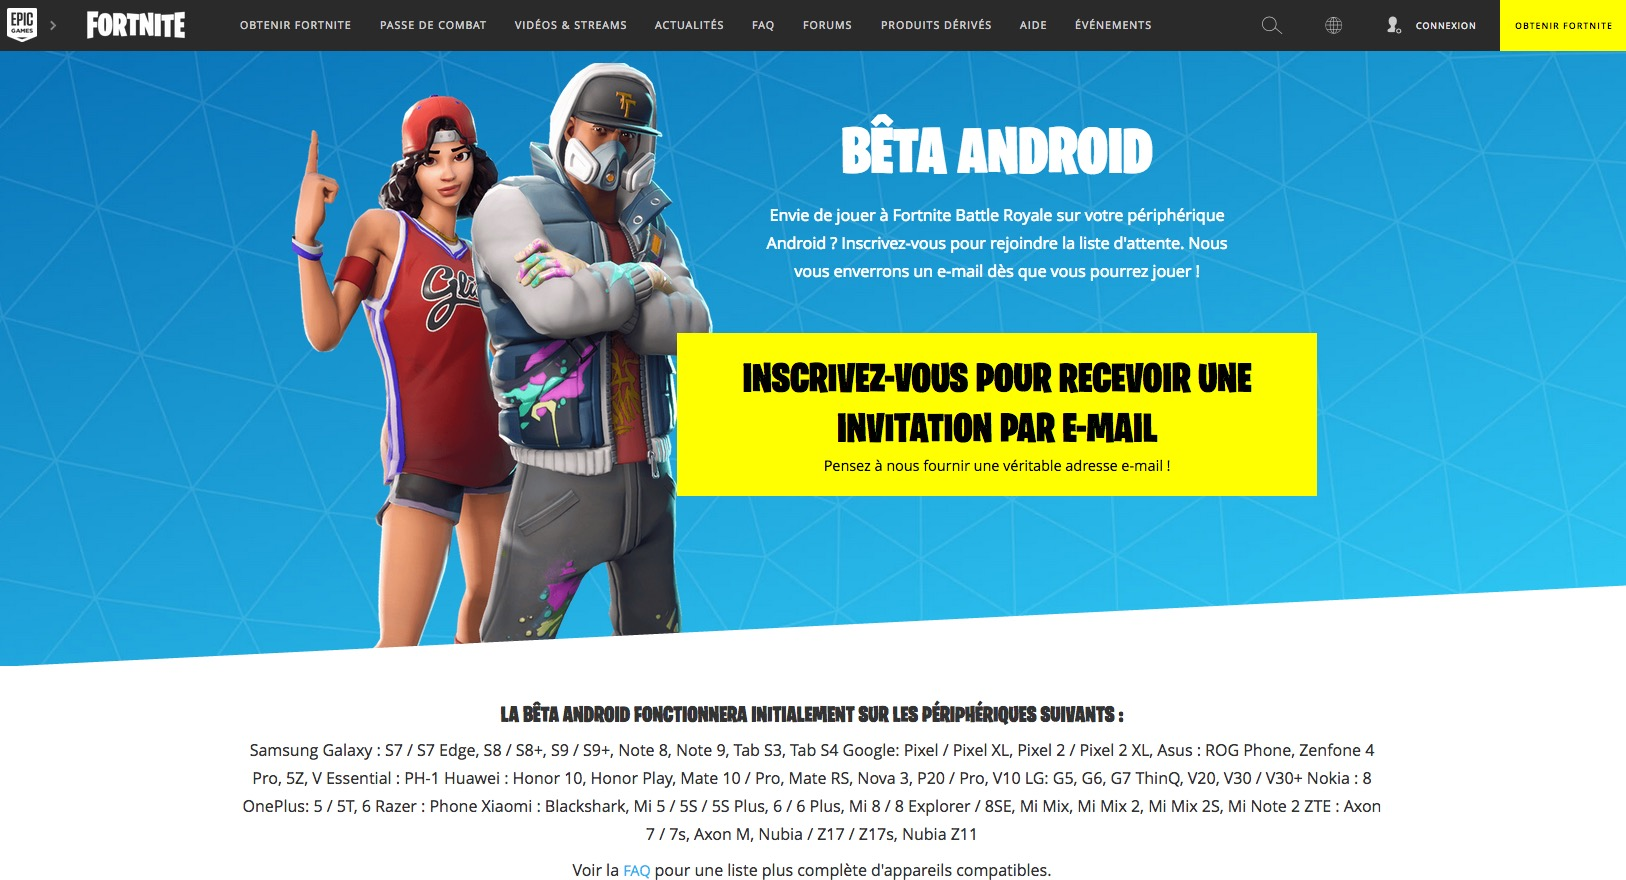 image de Fortnite arrive sur Android 4